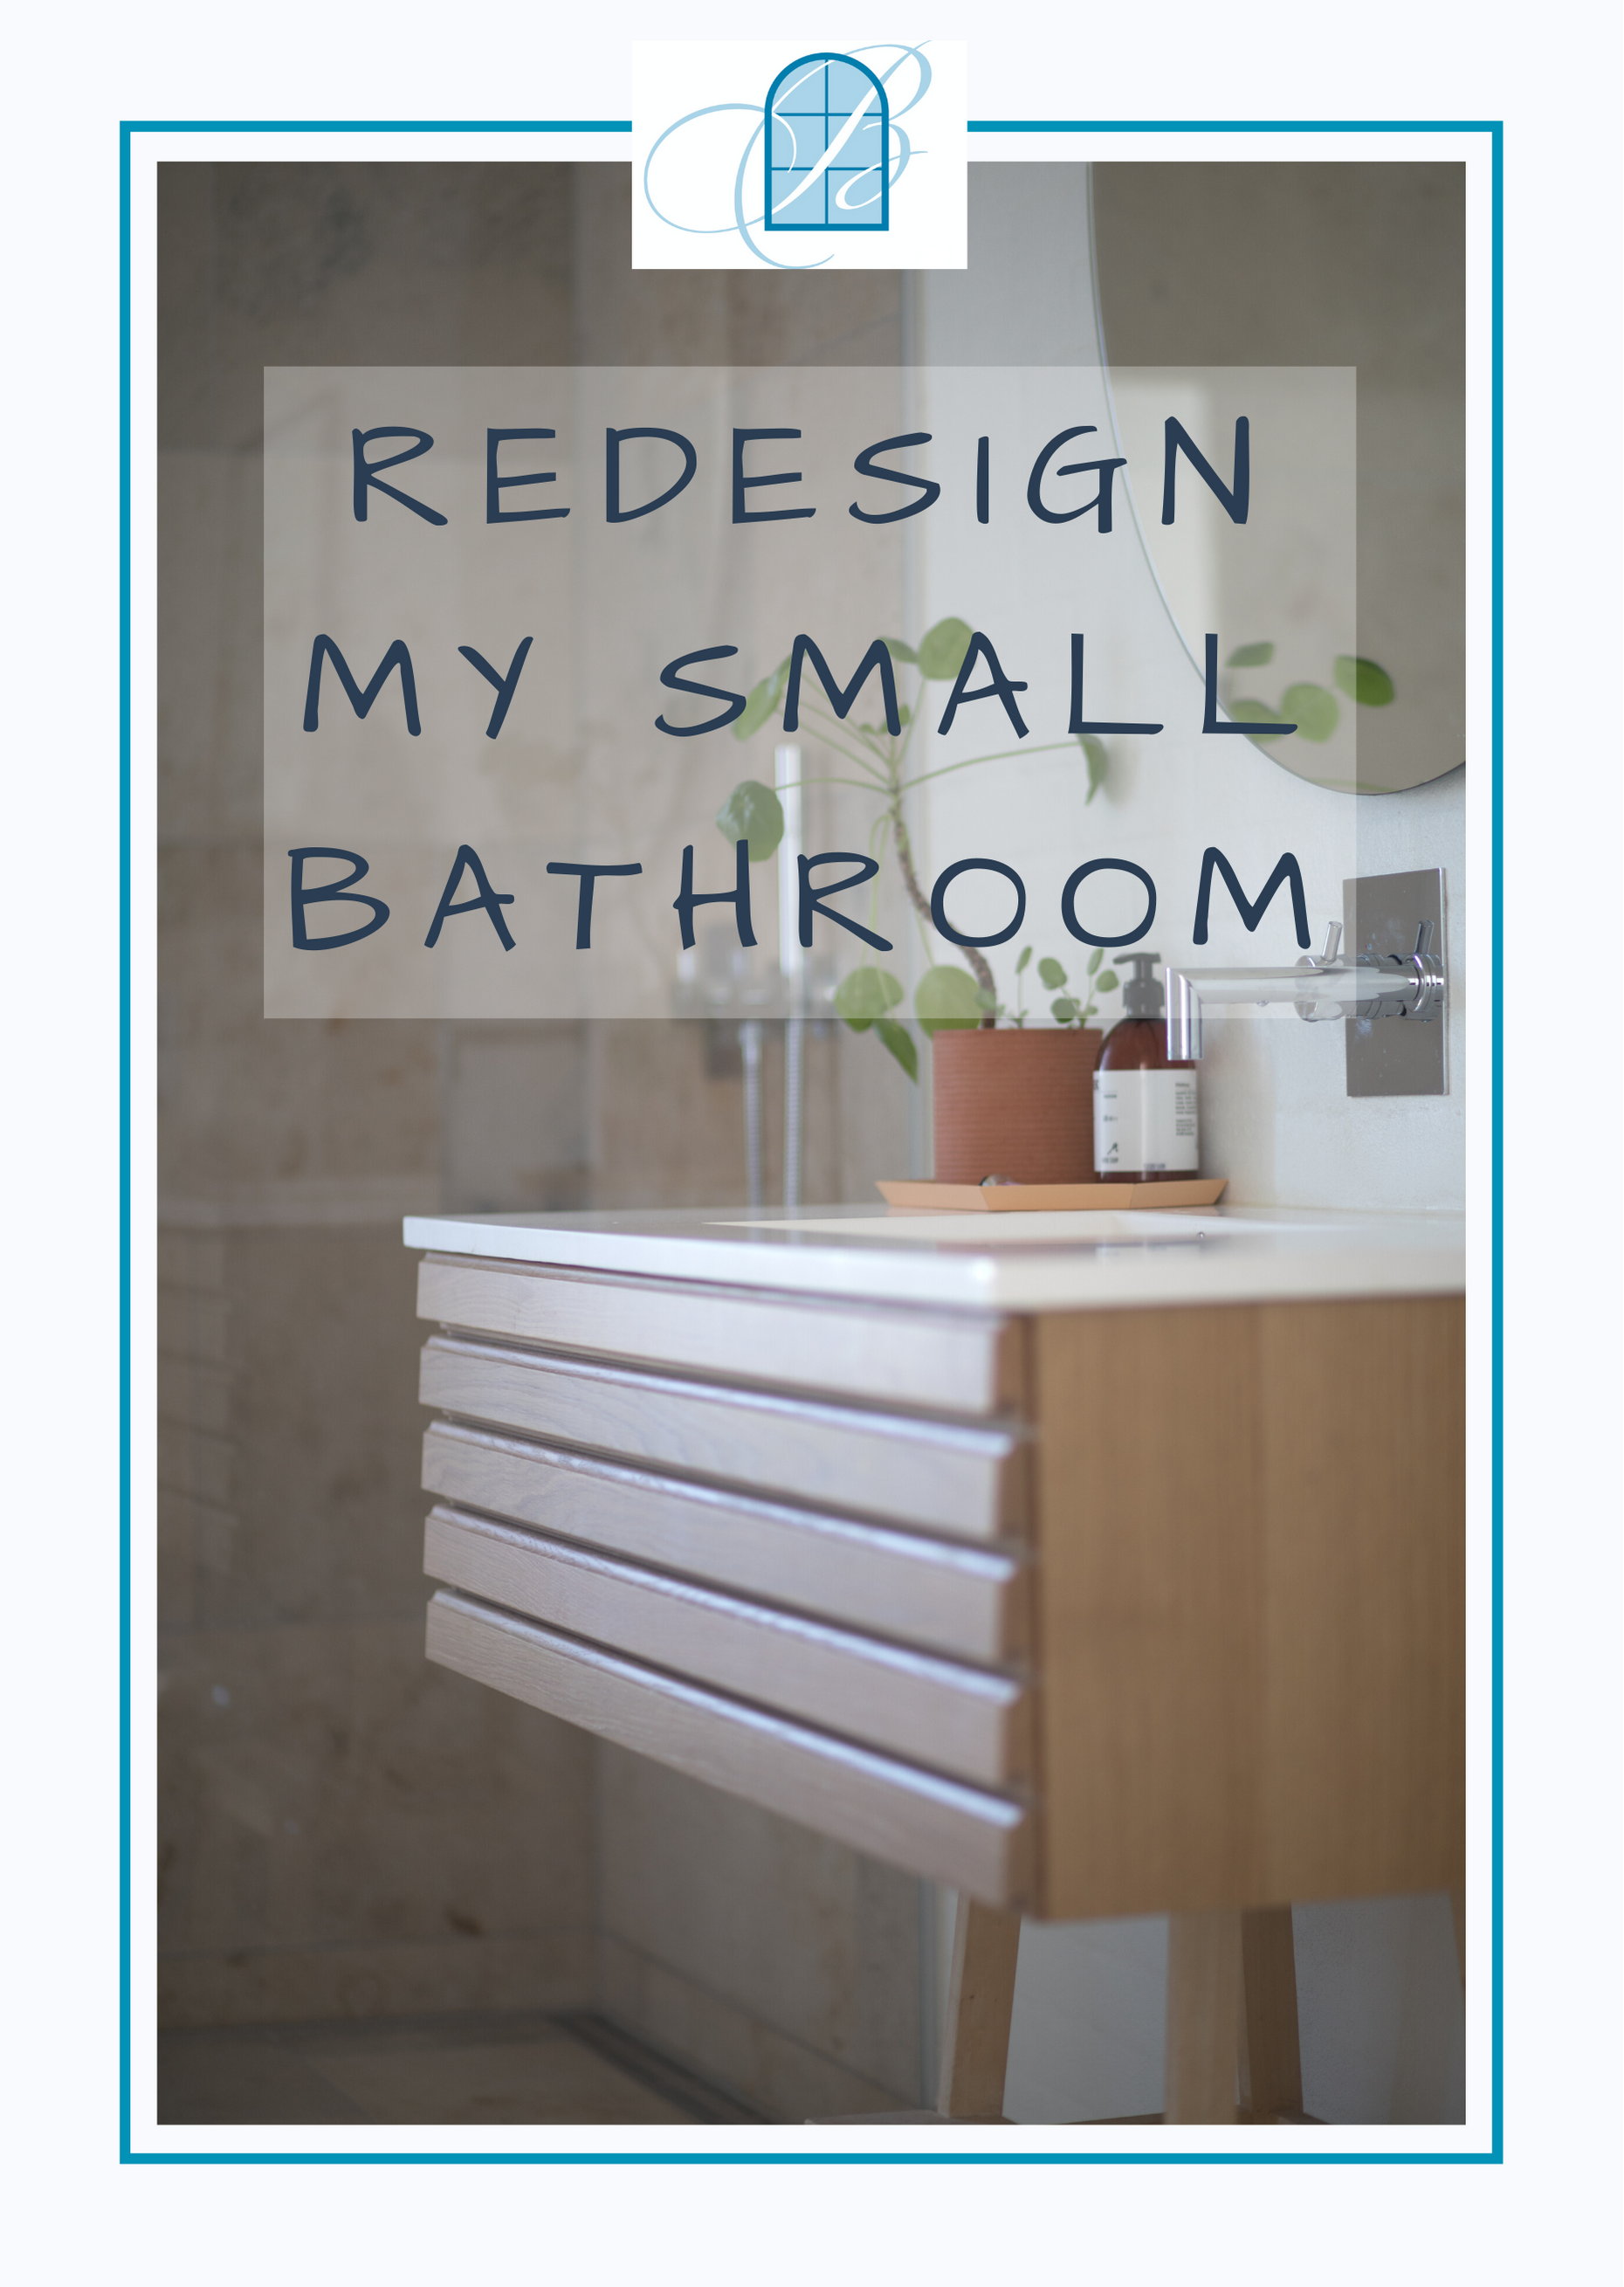 Redesign my small bathroom.png